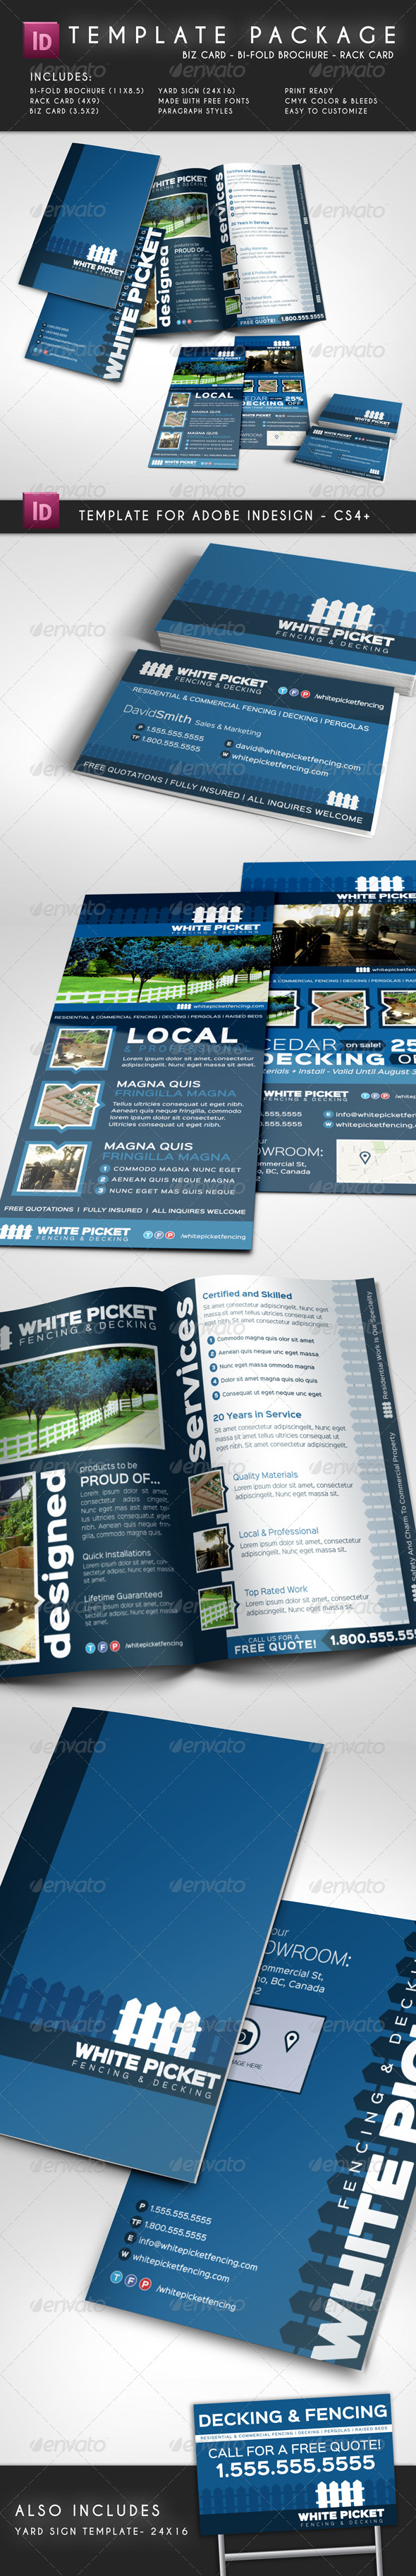 GraphicRiver Template Package Brochure Rack Card Biz Card 8042422